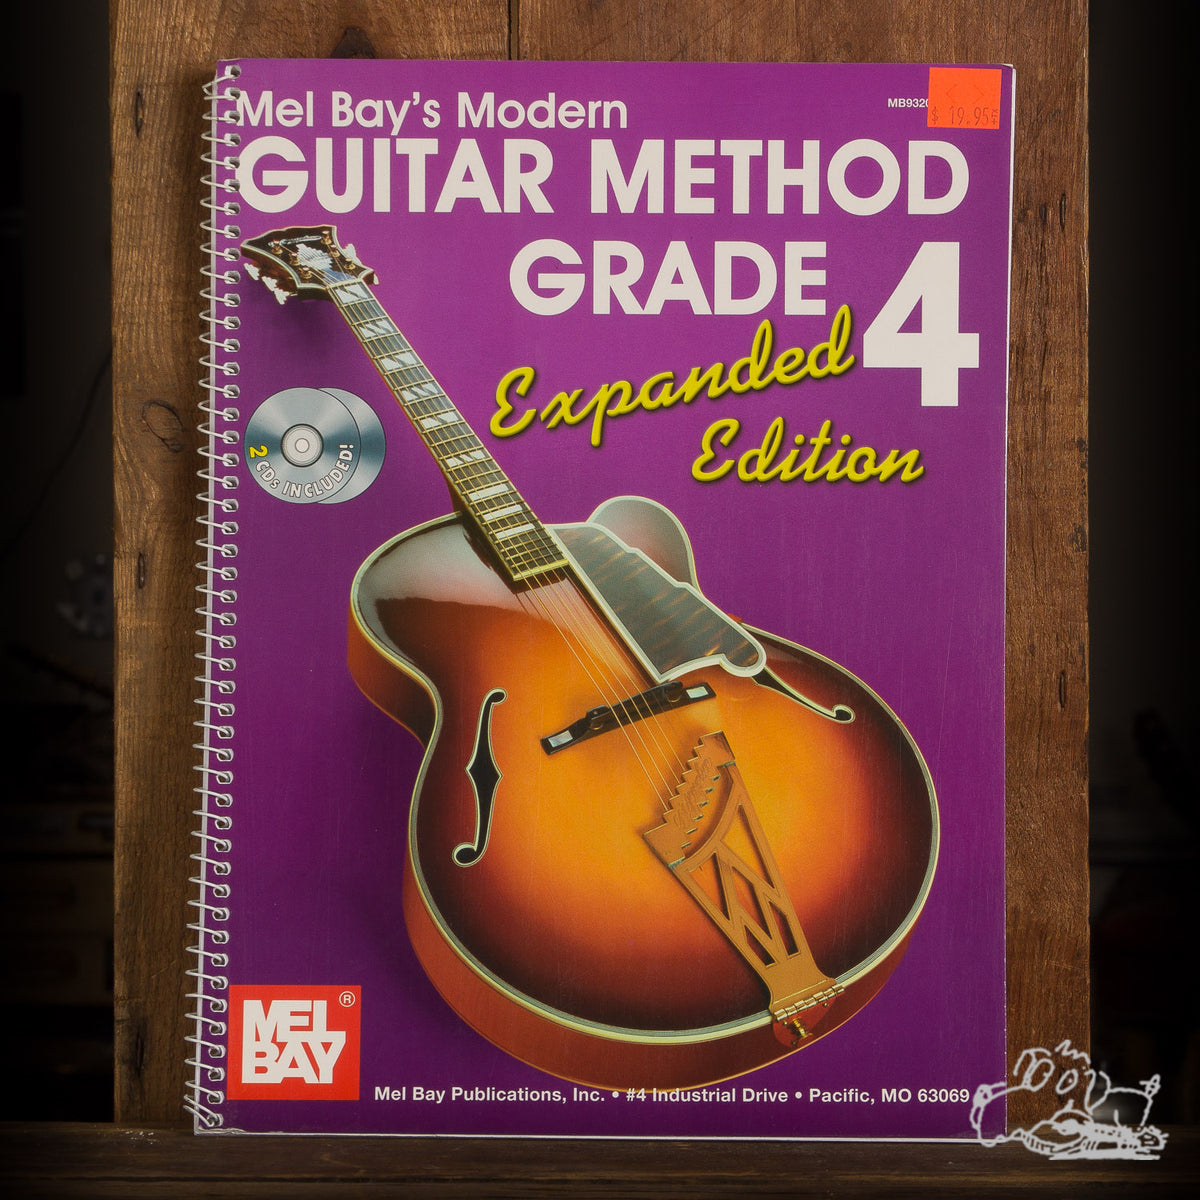 Mel Bay's Modern Guitar Method Grade 4: Expanded Edition